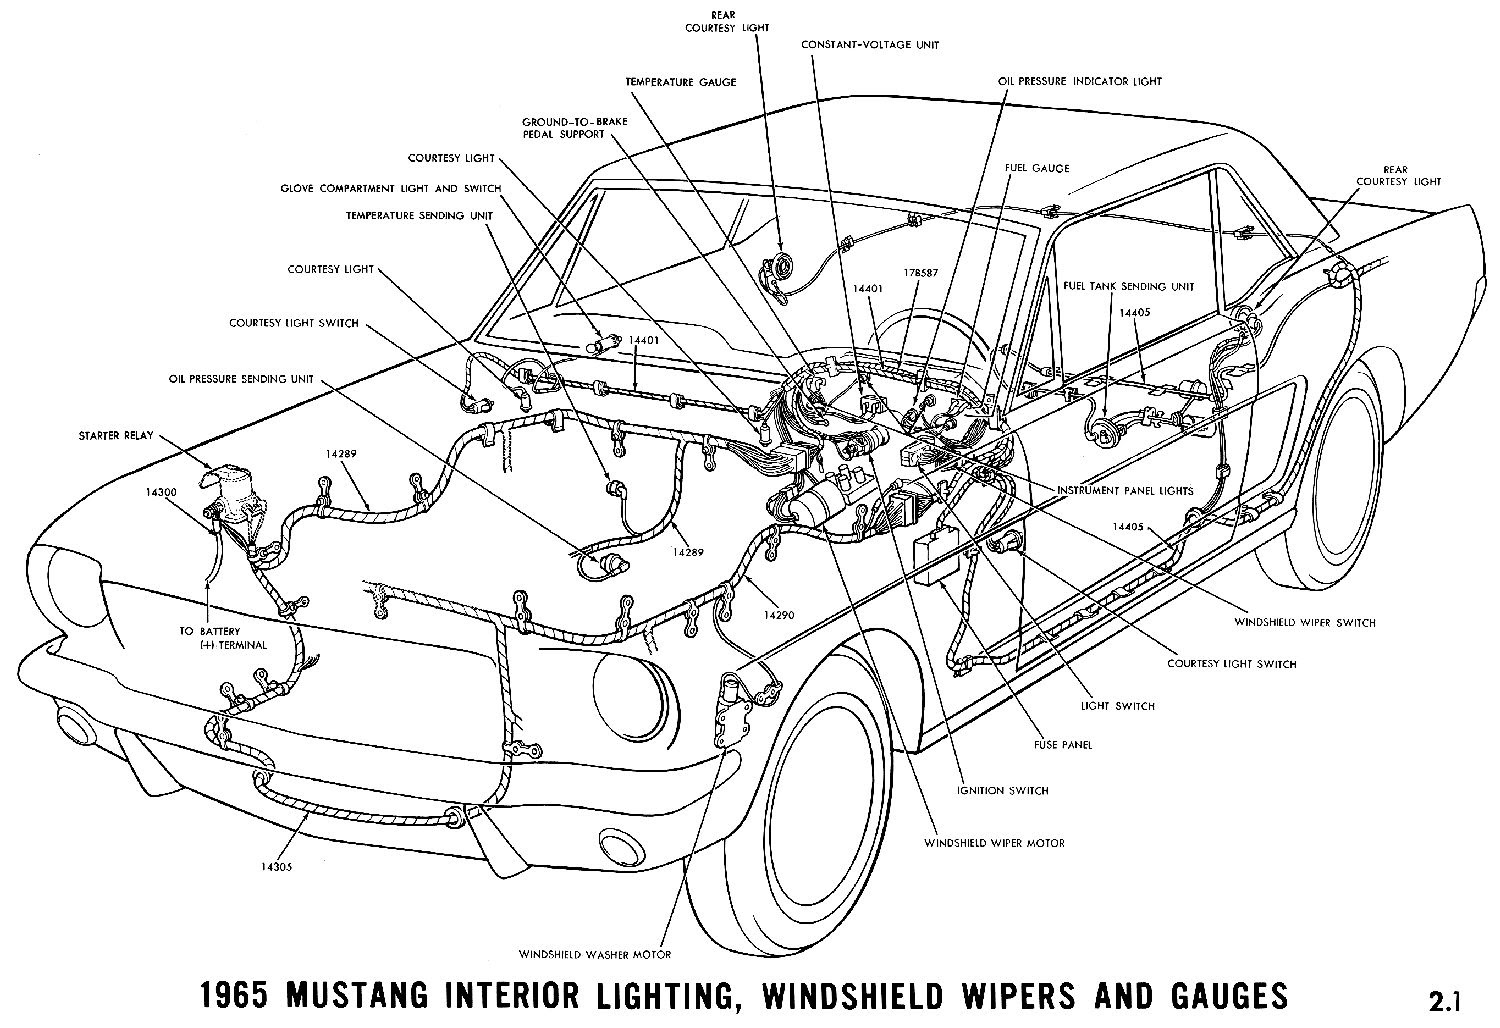 1969 Corvette Wiring Diagram Temperature Gauge 2003 Ford Mustang Wiring Bege Wiring Diagram